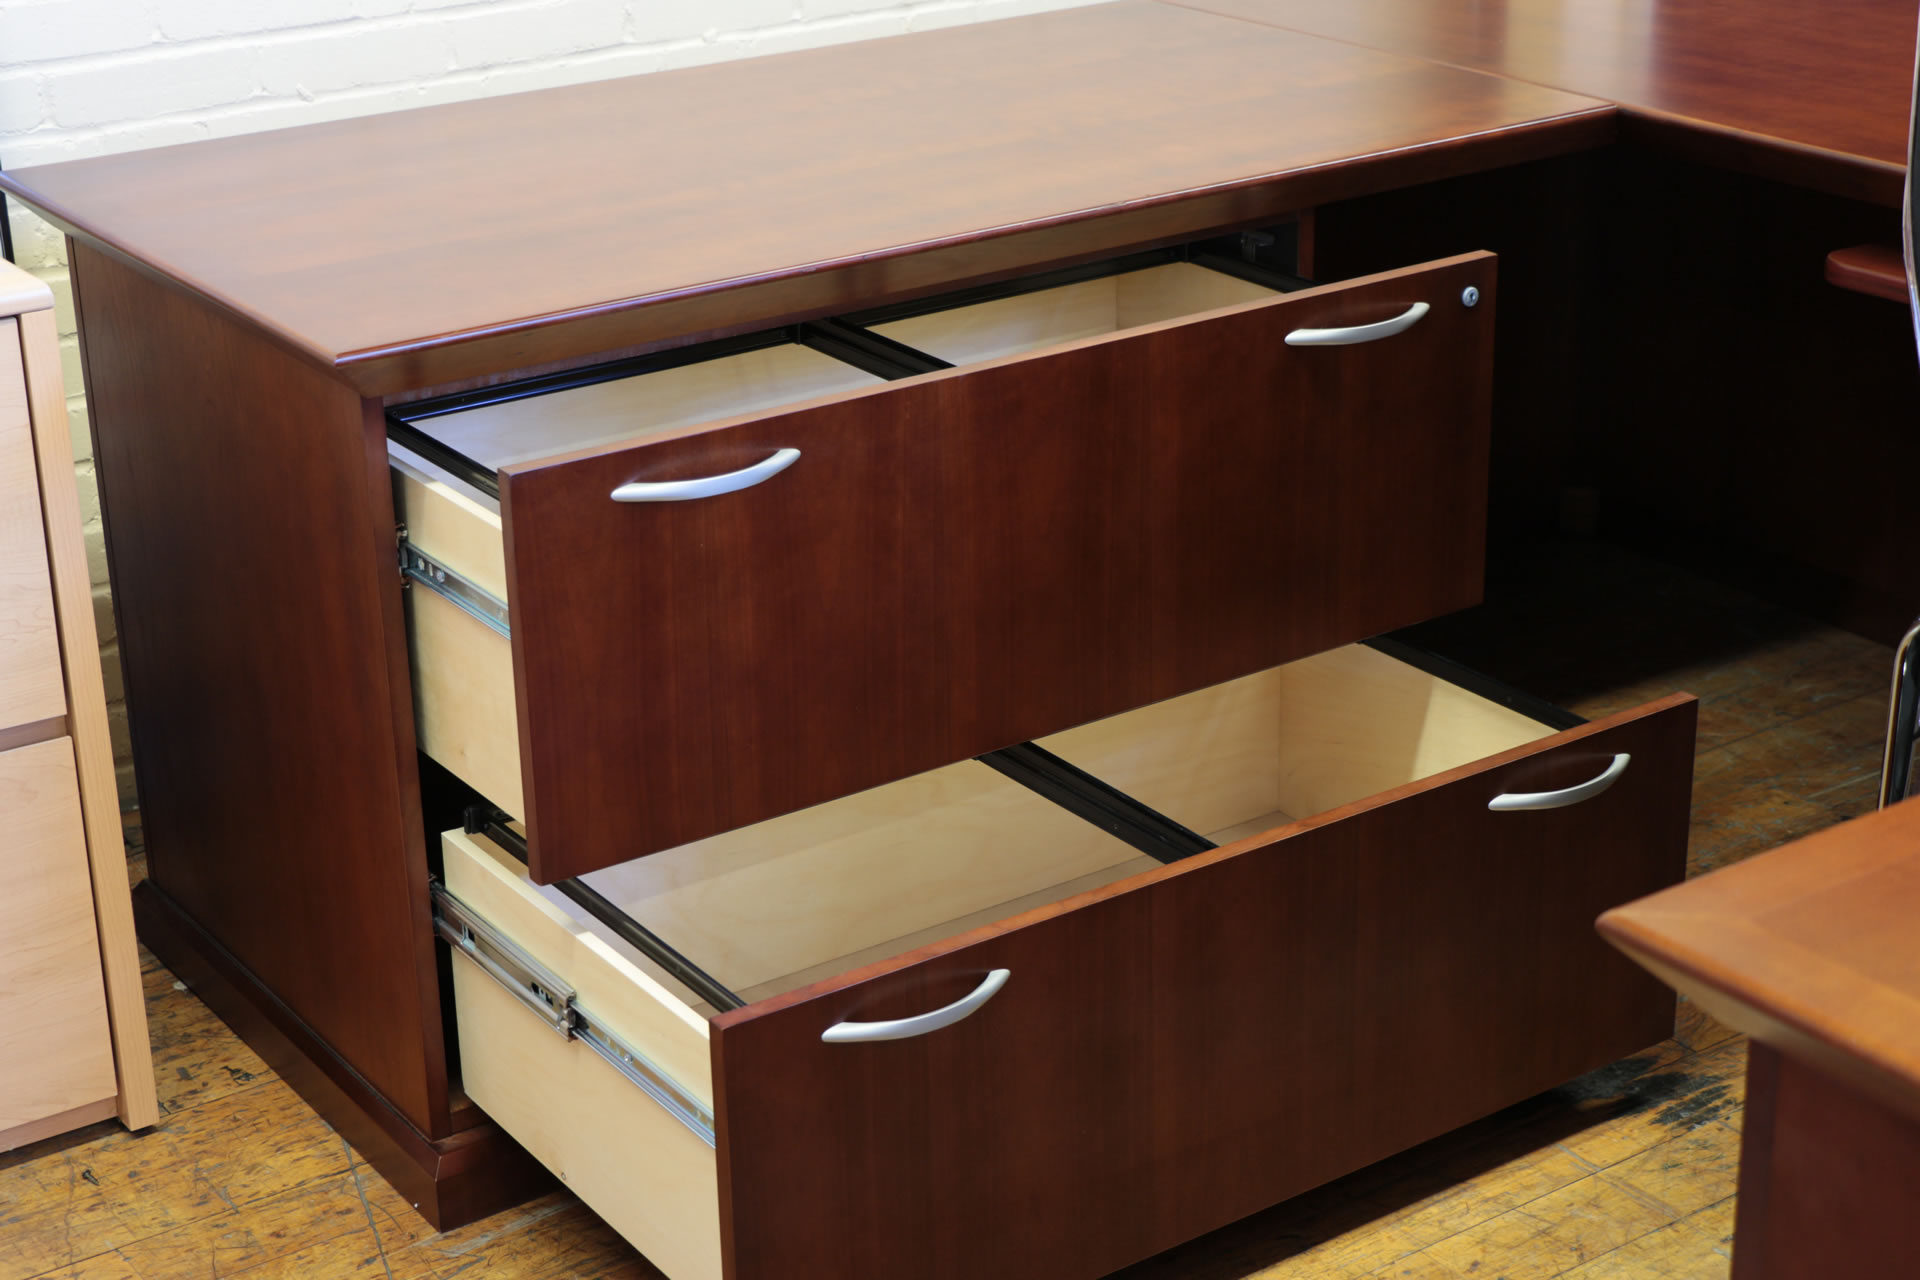 peartreeofficefurniture_peartreeofficefurniture_peartreeofficefurniture_img_9428.jpg